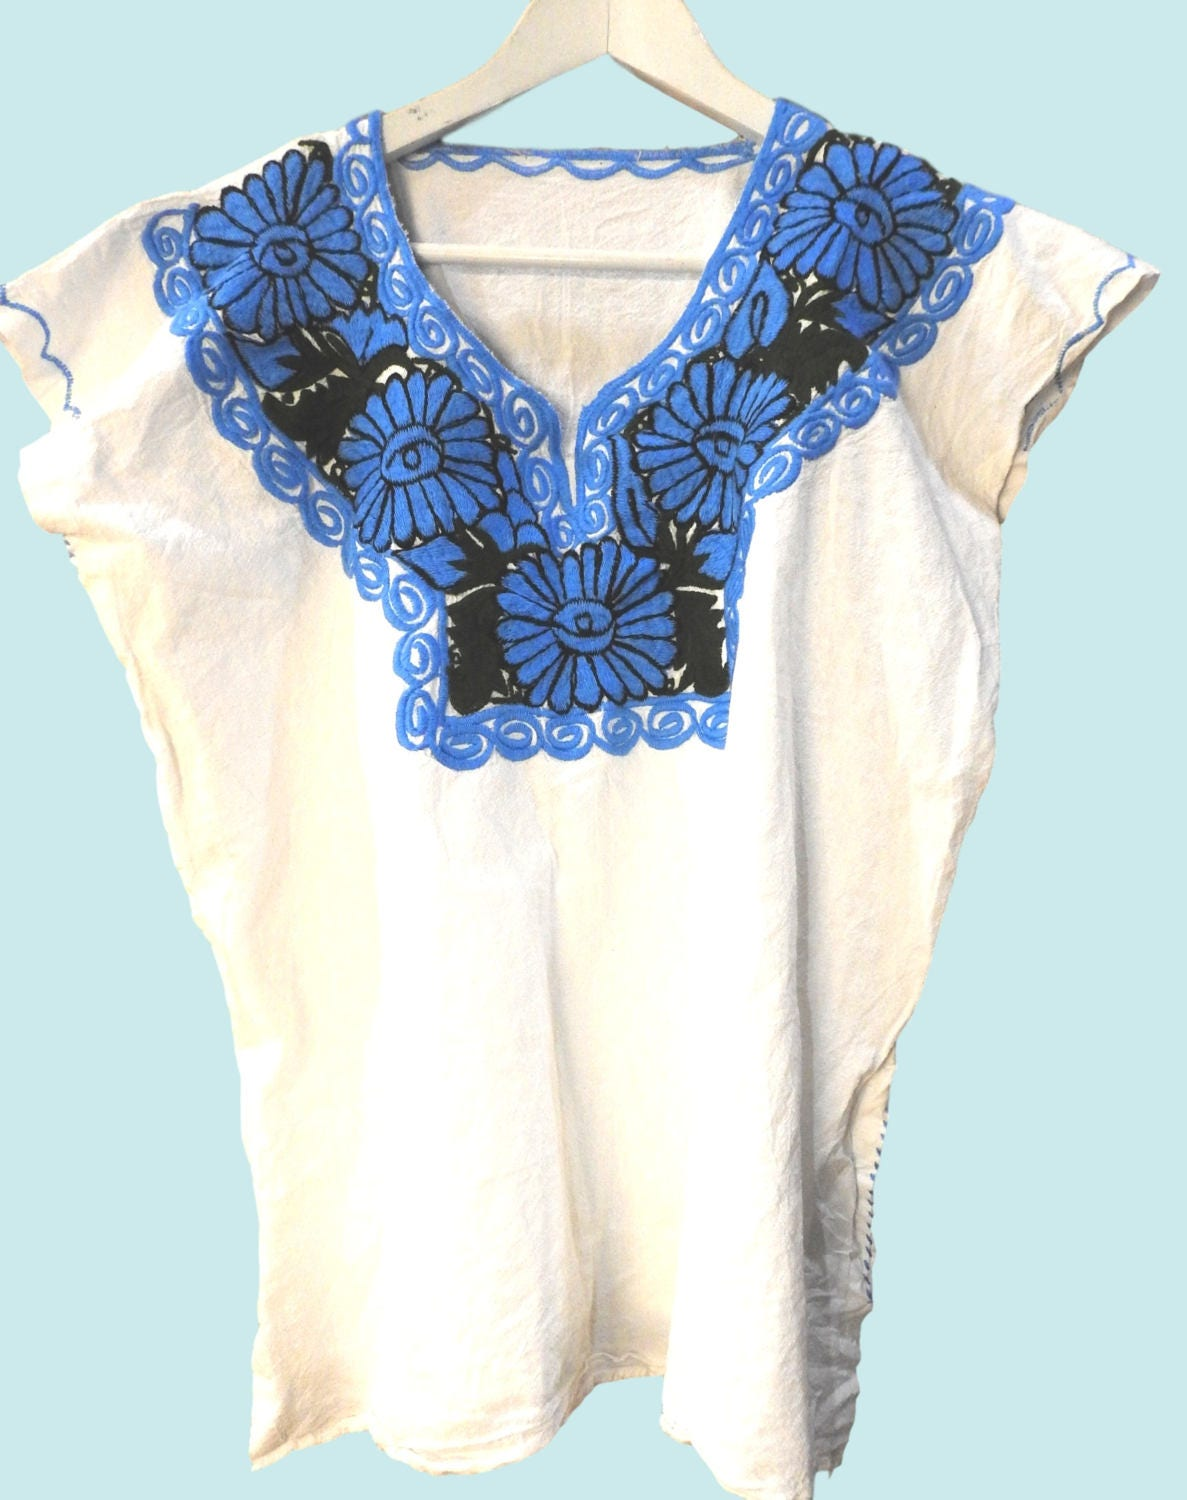 White Mexico Embroidery Blouse A Real Authentic Mexican Clothes